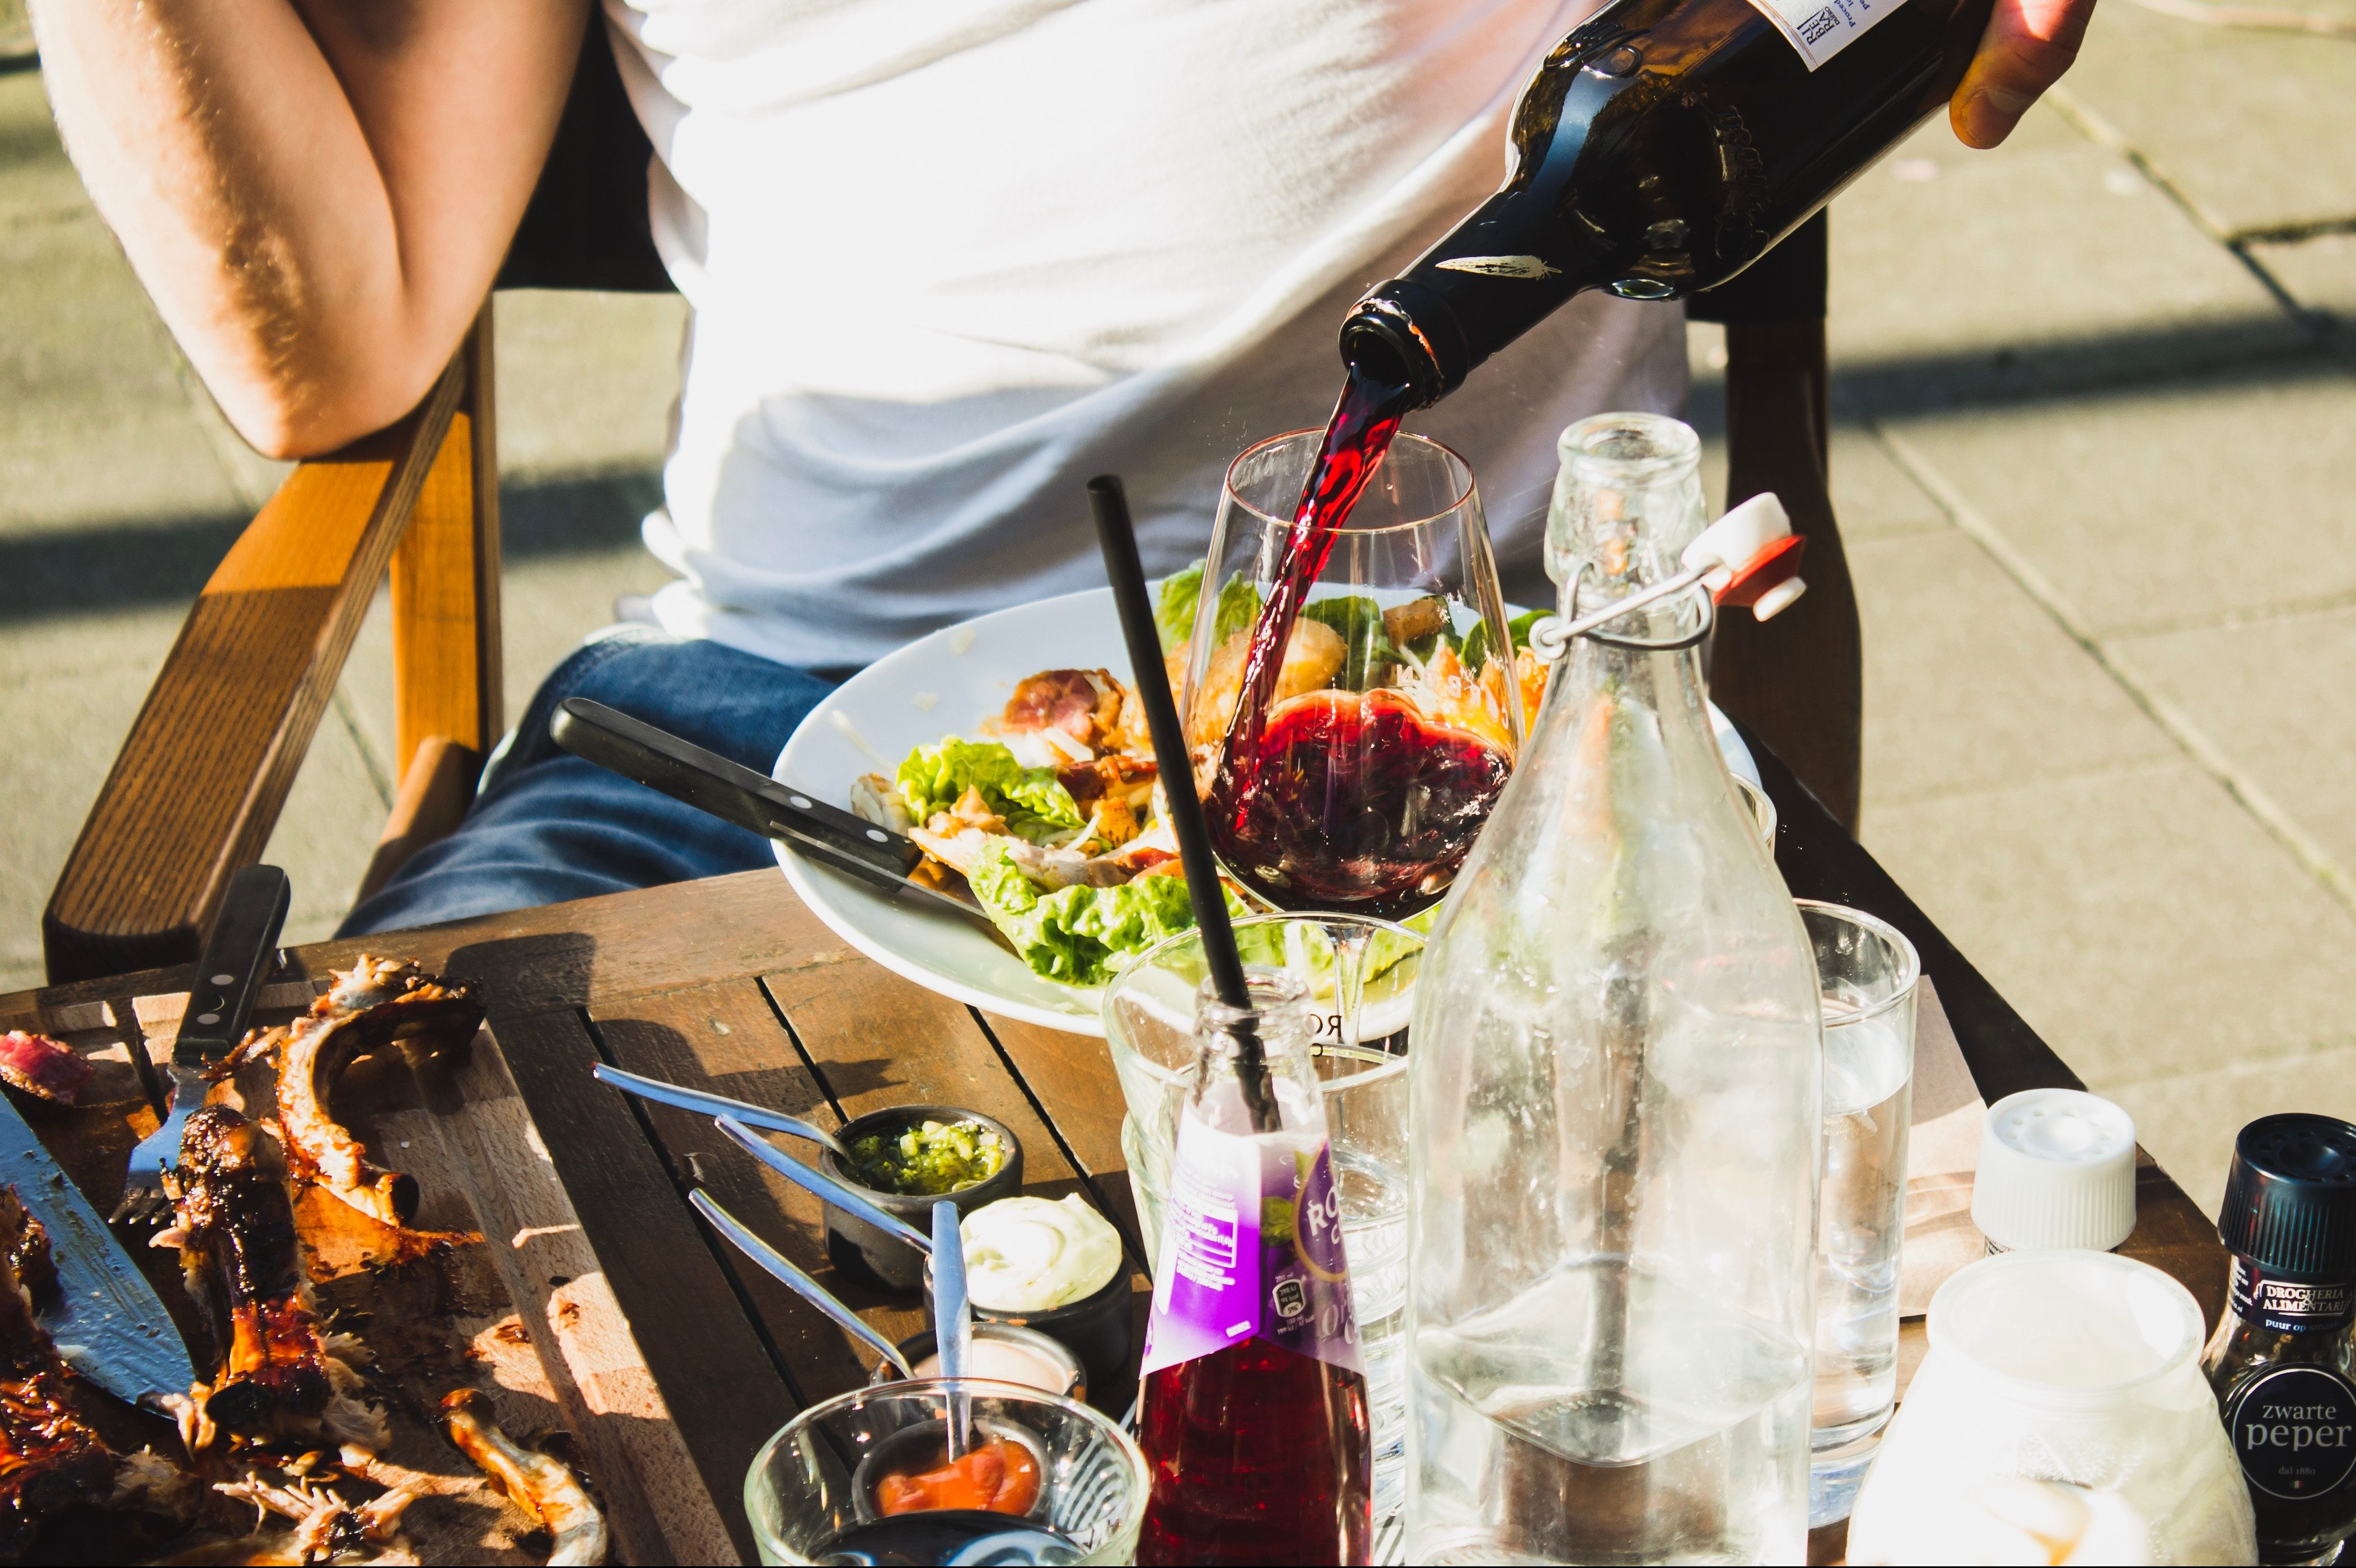 How to Bring Wine to a Backyard Cookout, According to Expert Sommeliers